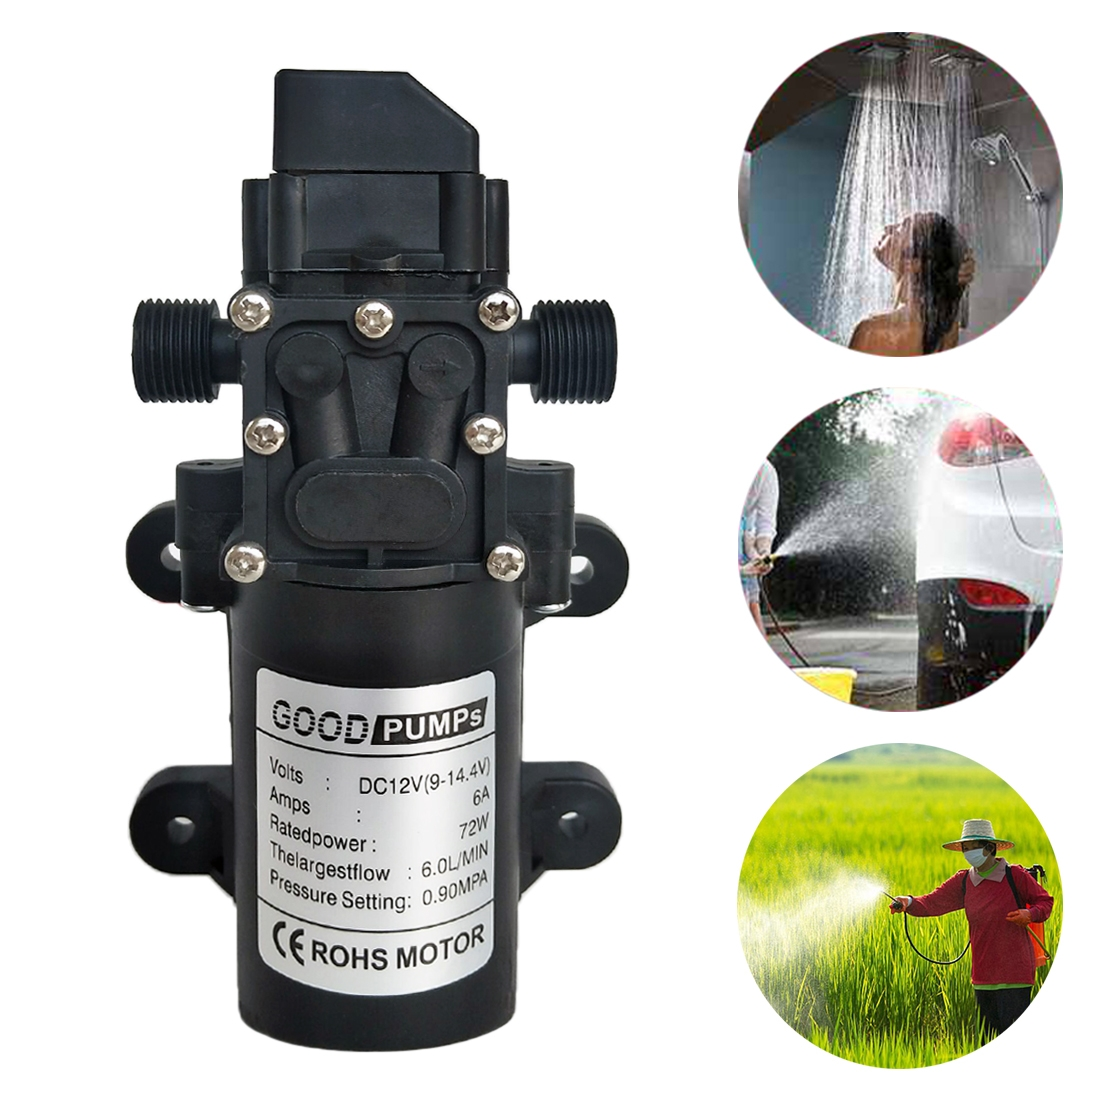 12V 72W Self-priming Pump High Pressure Car Washing Intelligent Diaphragm Right Out Water Pump, Type: Double Thread (Double Flat Mouth 18mm)